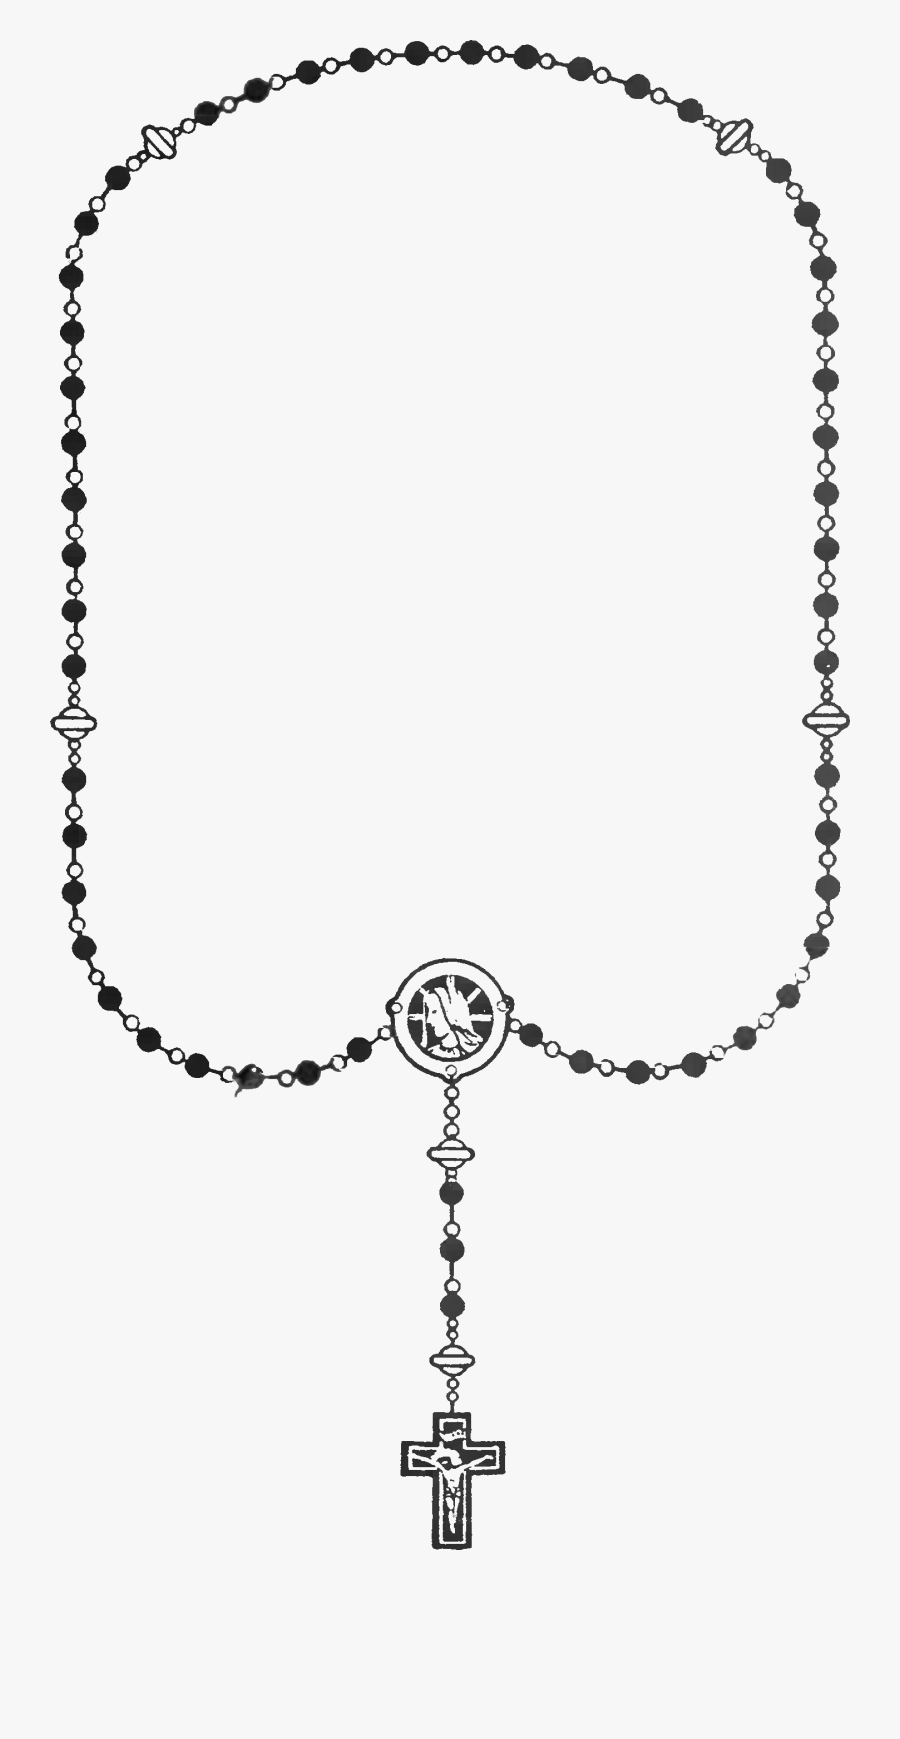 File - Rosary-black - Wikimedia Commons - Rosary, Transparent Clipart